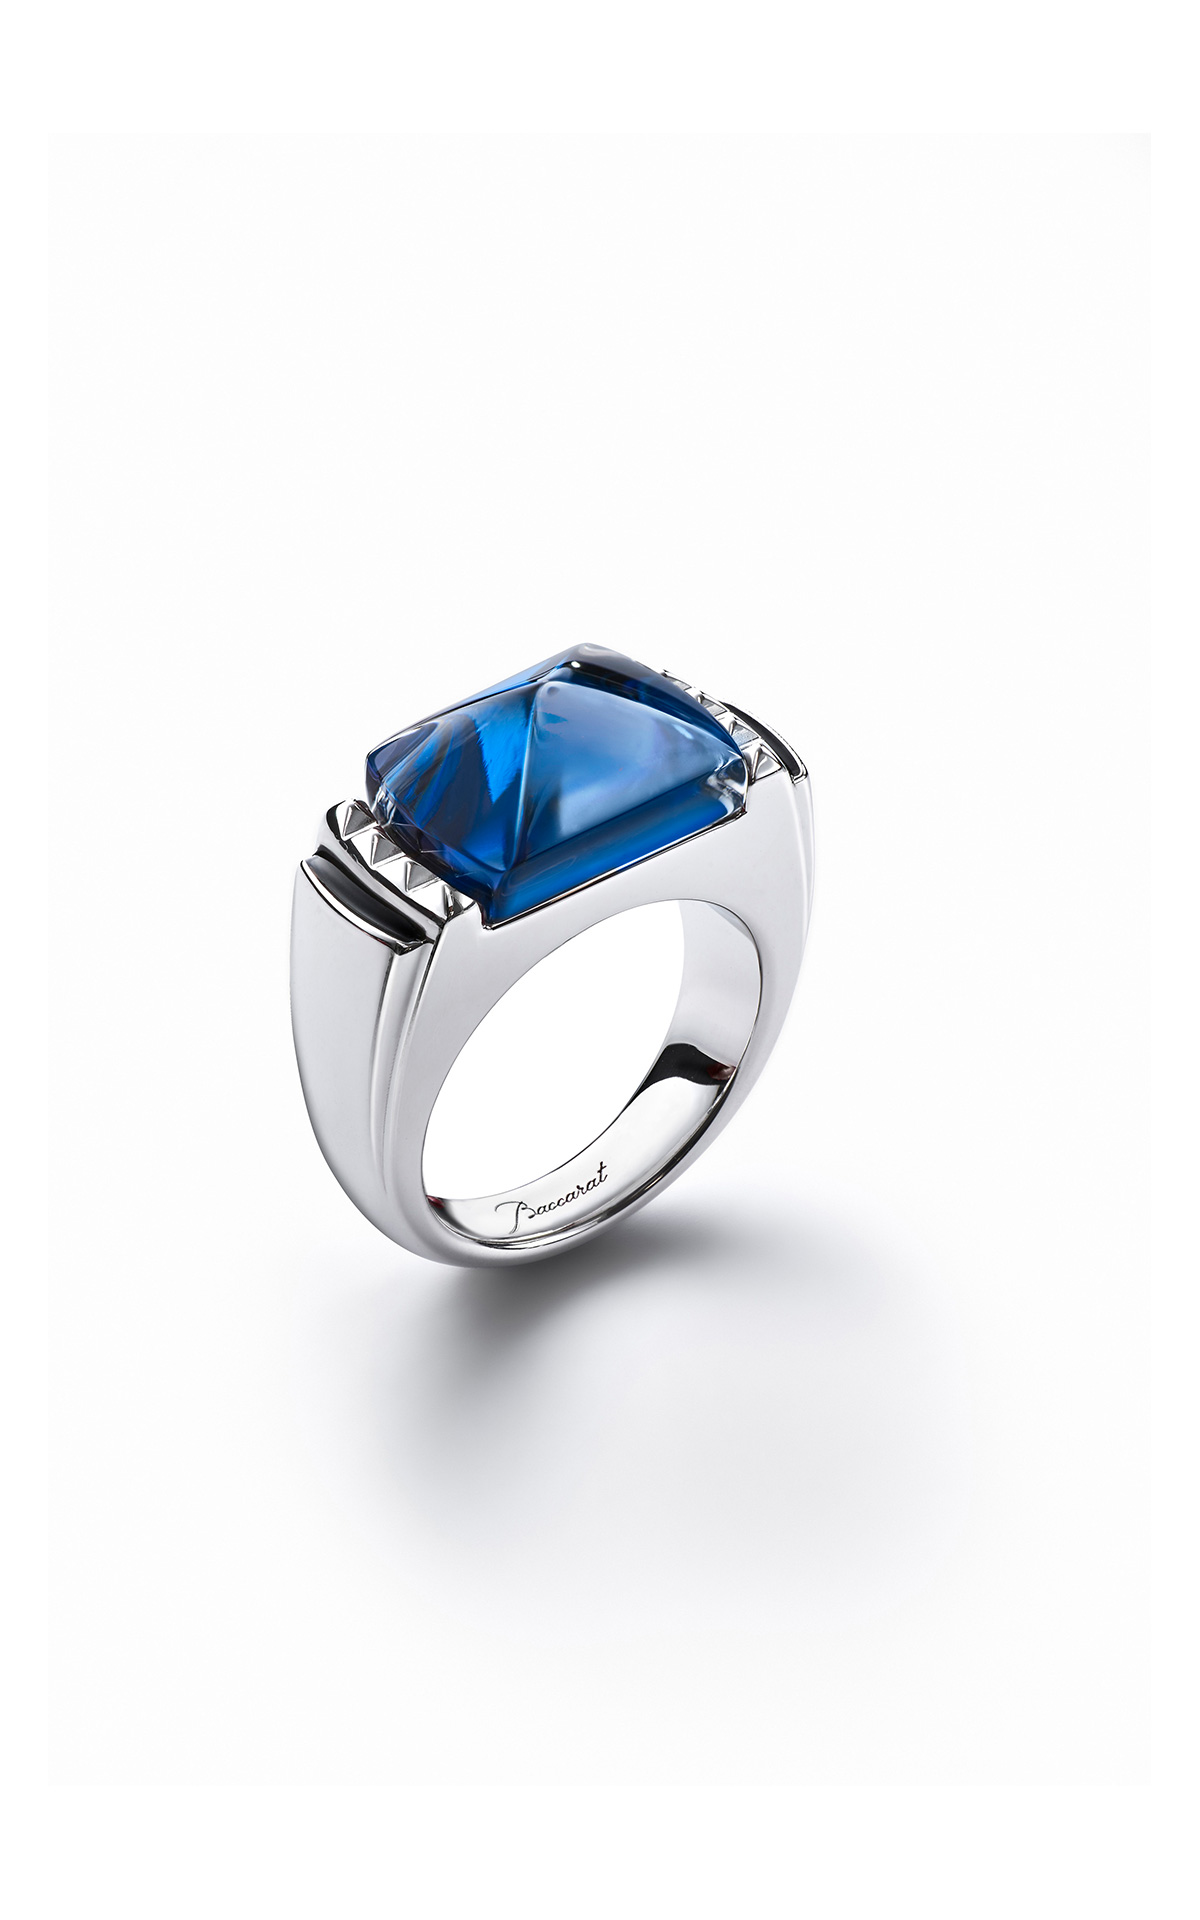 Baccarat Blue Louxor crystal ring | La Vallée Village